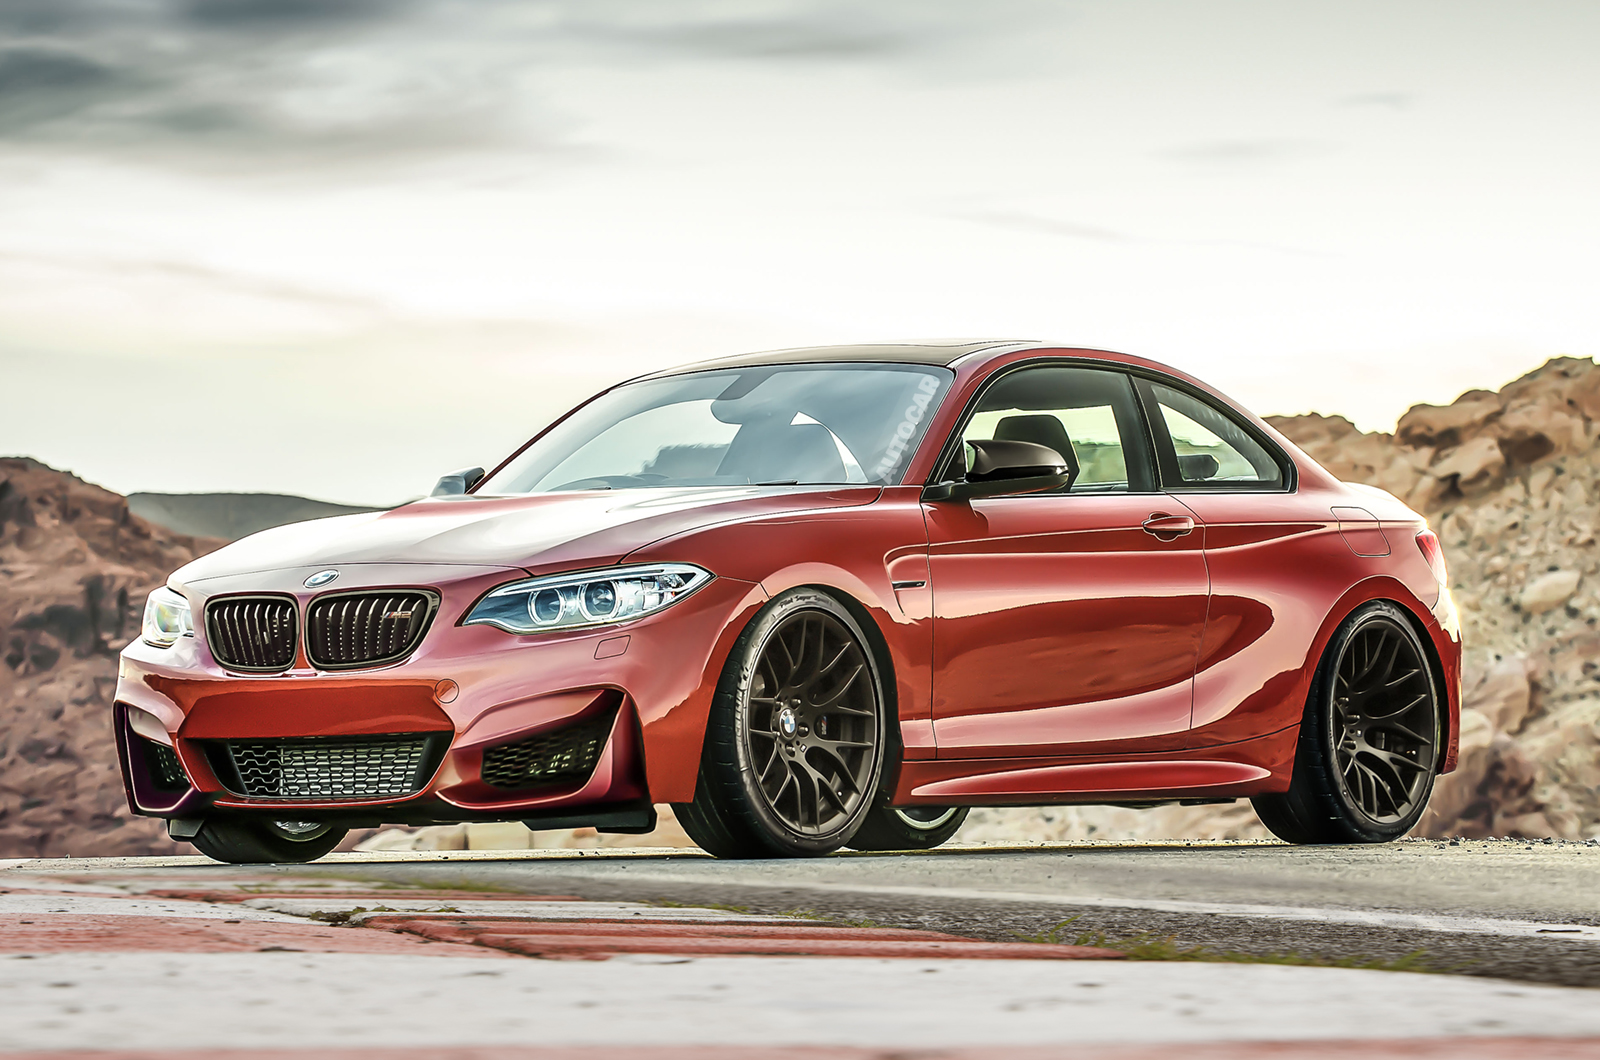 New Cars 2015 BMW M2 Red Color Car for Wallpaper Your Car Today 1600x1060